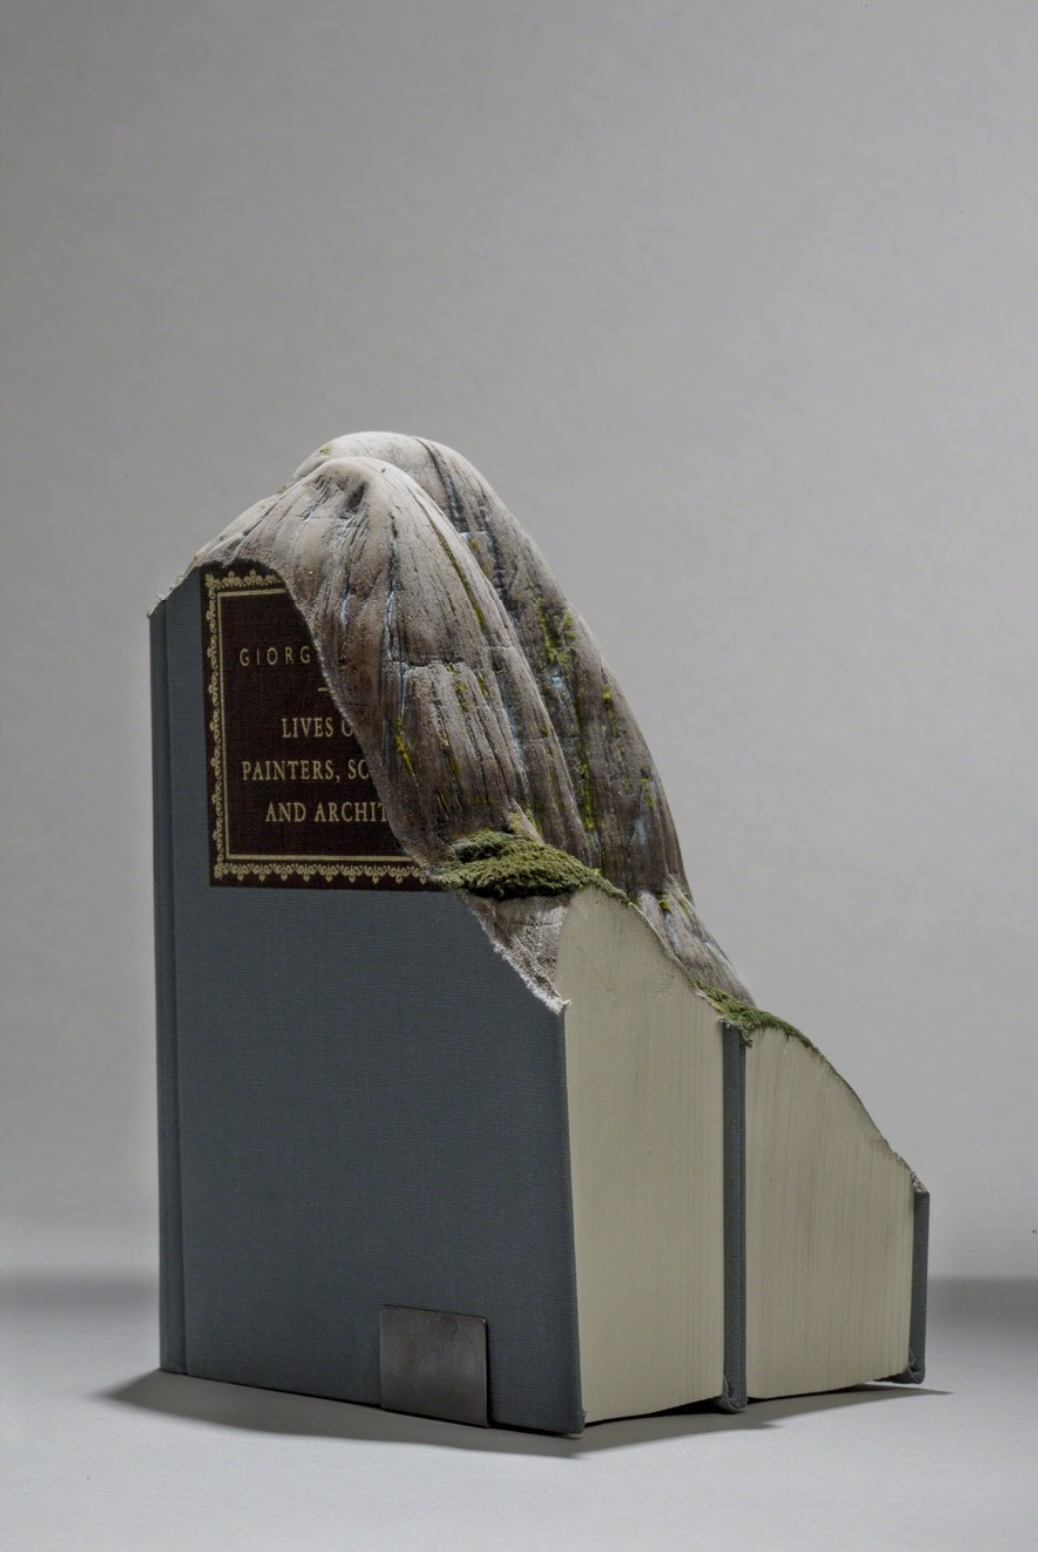 Guy Laramee Creates Hyperrealistic Topographic Landscapes Carved into Old Books - Brasil